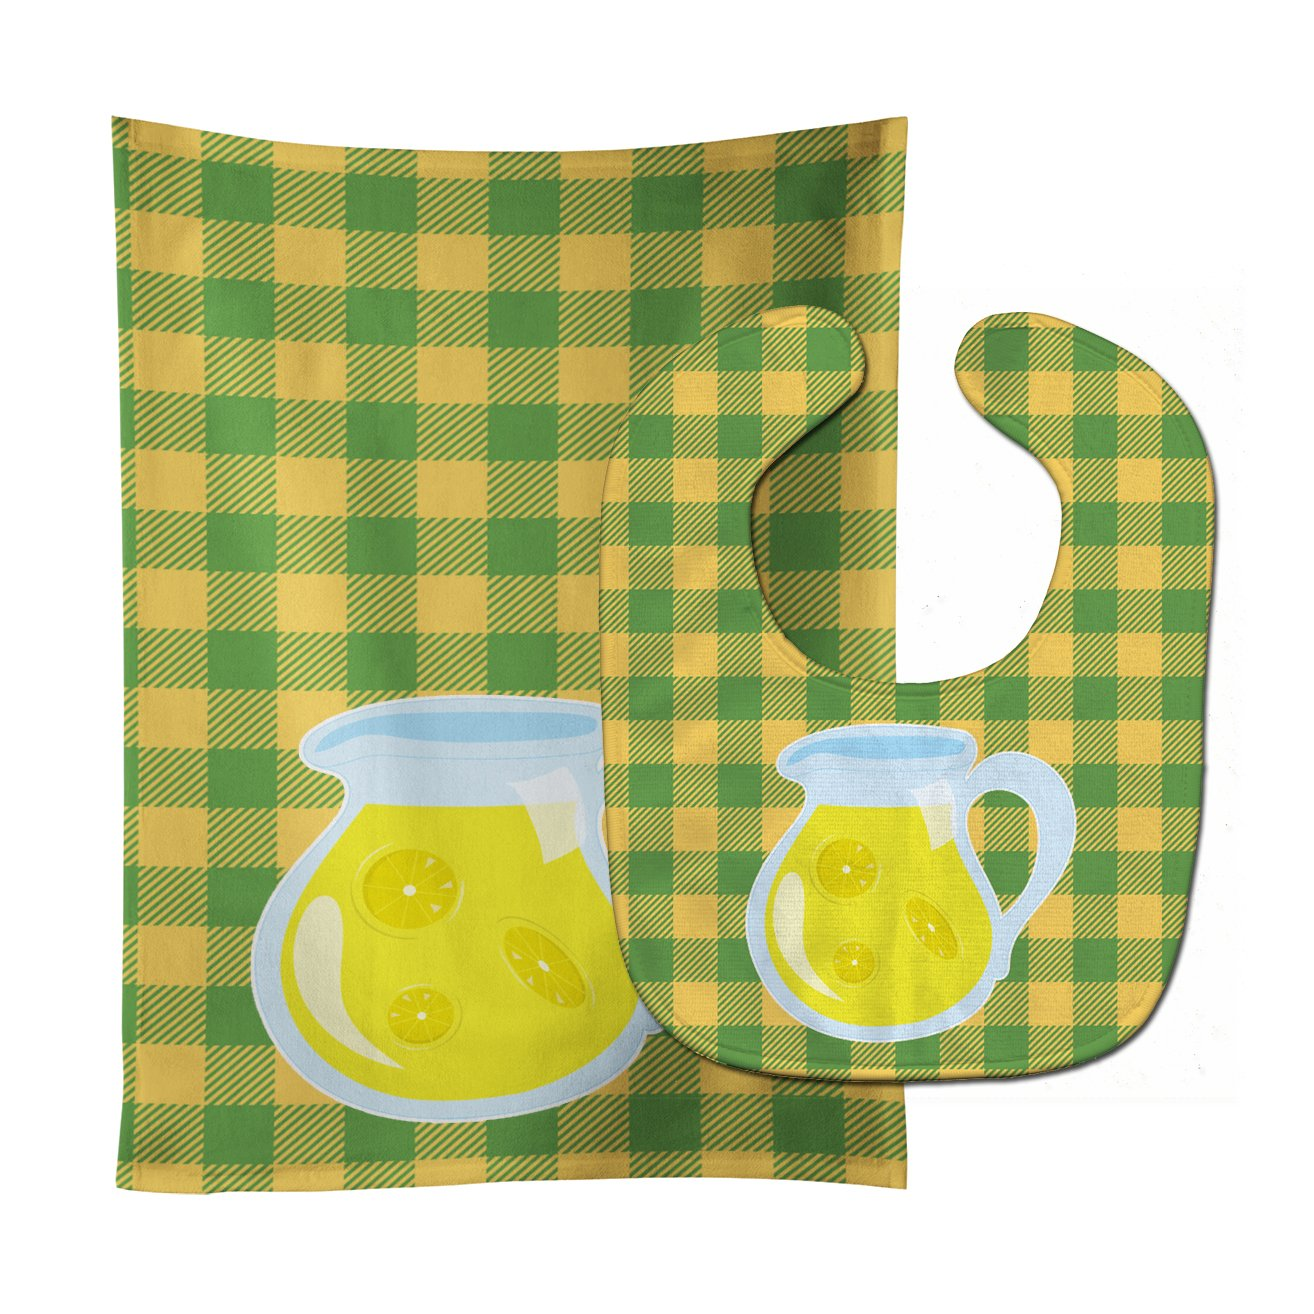 Backyard BBQ Lemonade #2 Baby Bib & Burp Cloth BB8631STBU by Caroline's Treasures